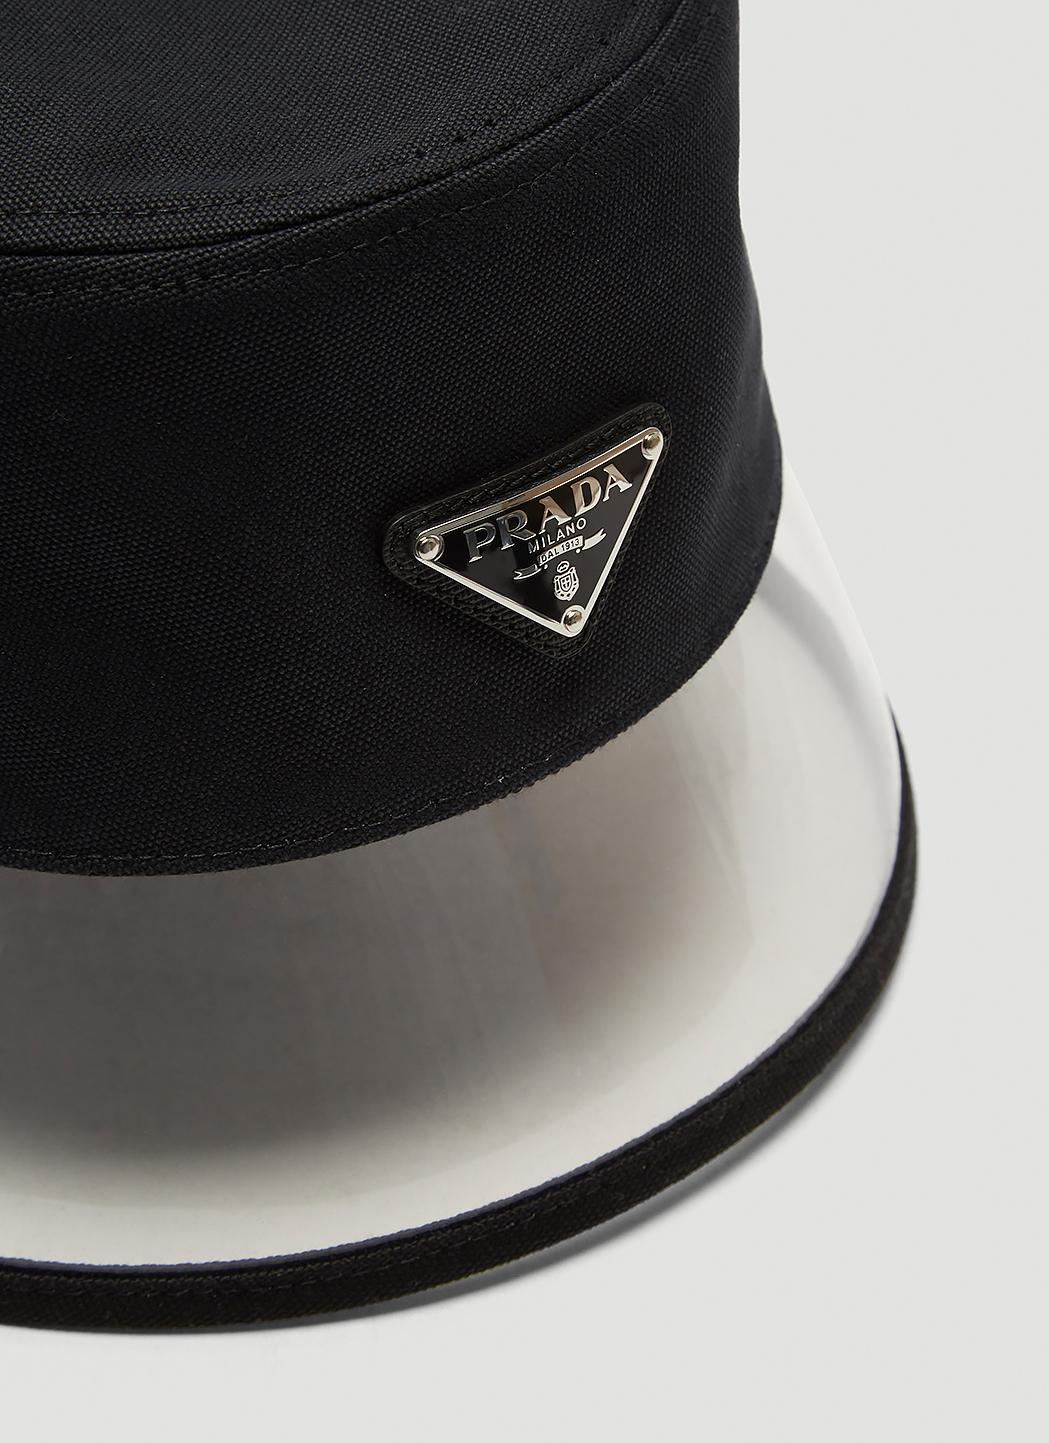 21e7a42e404 Lyst - Prada Plexiglass Trim Bucket Hat In Black in Black - Save 4%